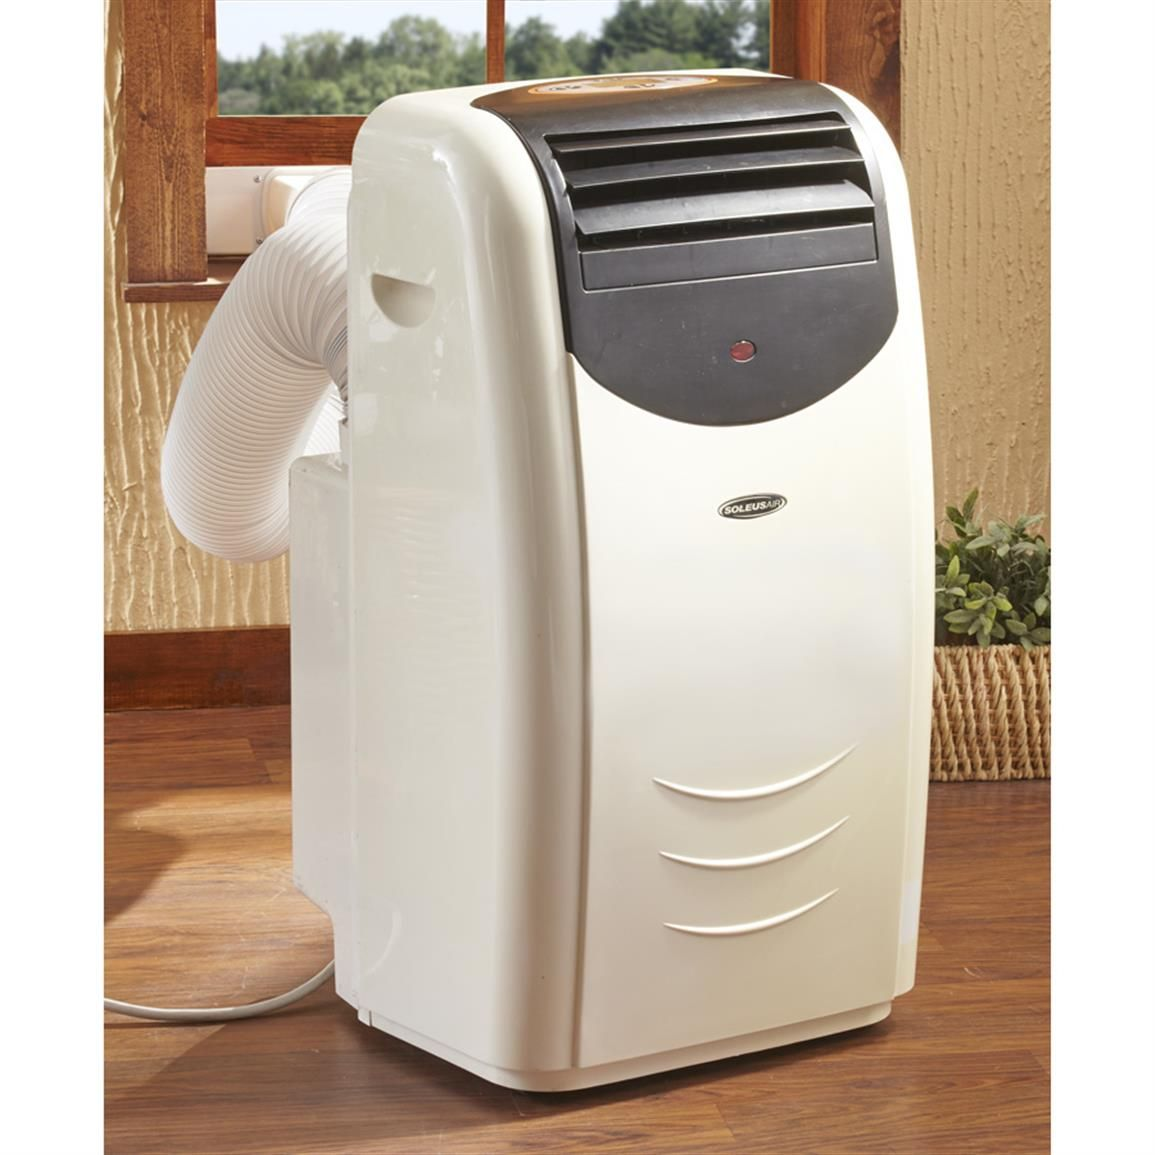 Soleus Air 14,000 BTU Portable Air Conditioner, Factory Refurbished